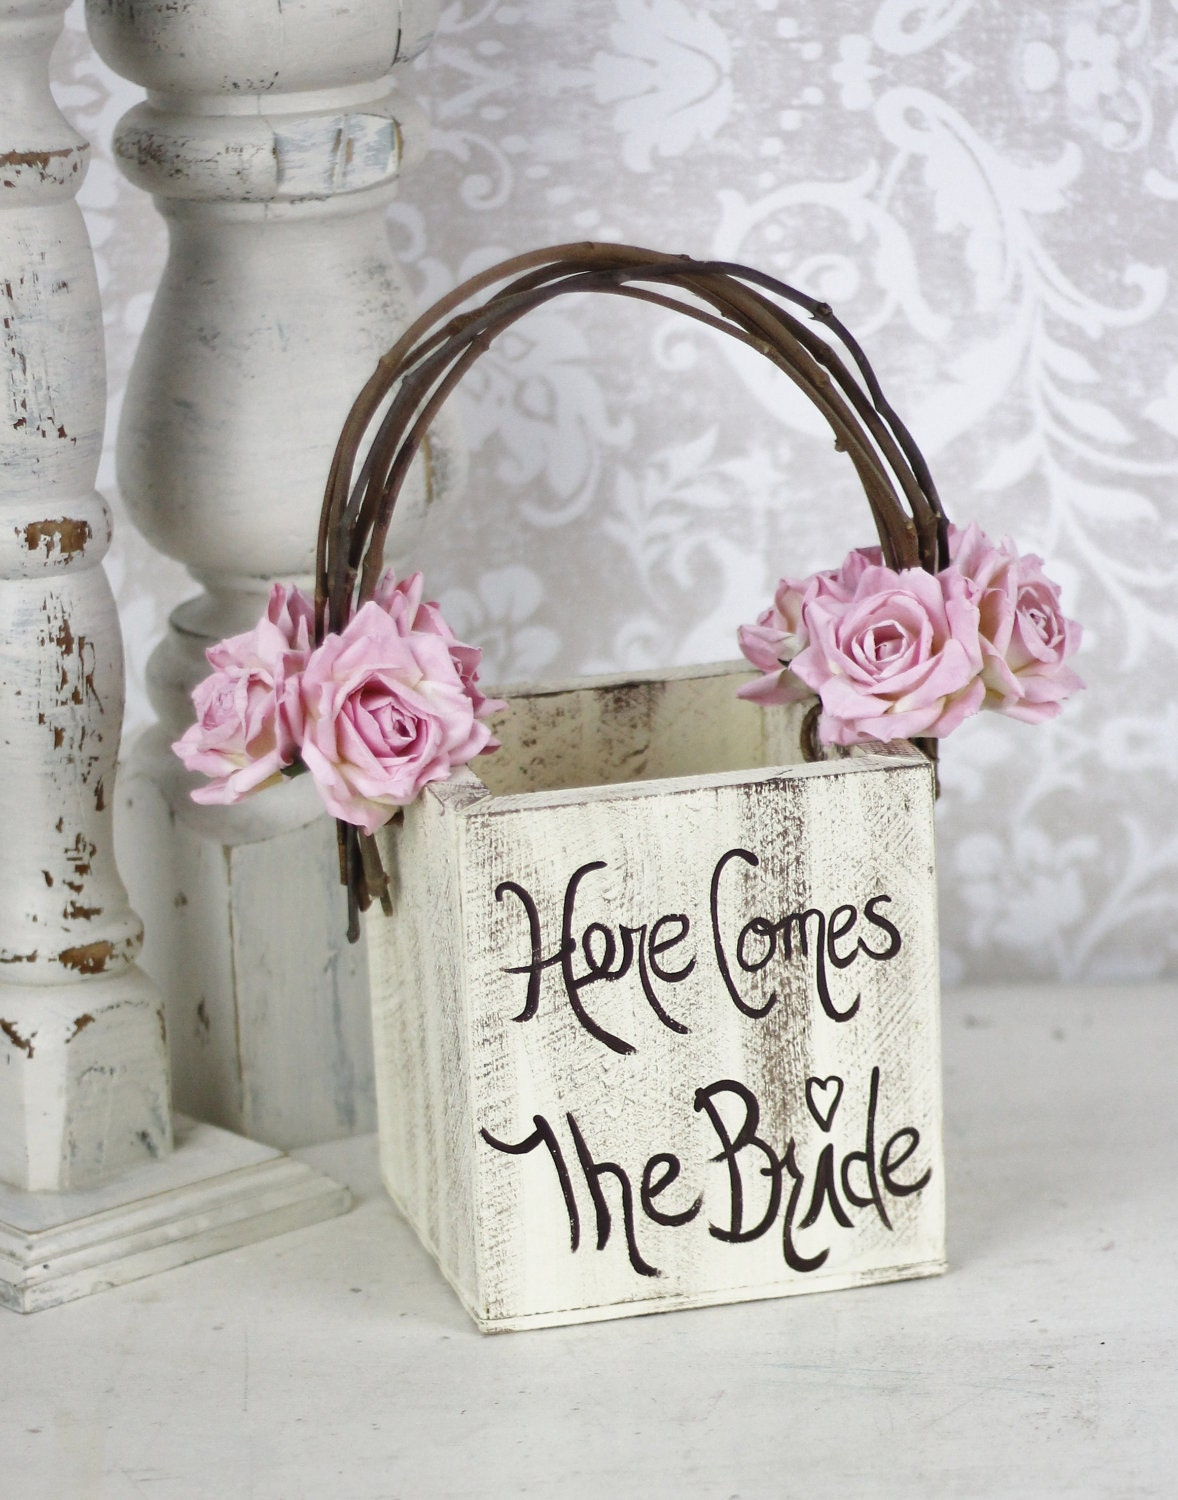 A Simple Square Planter Basket With Some Customized Touches Make This Charming Great For Rustic Garden Or Country Wedding